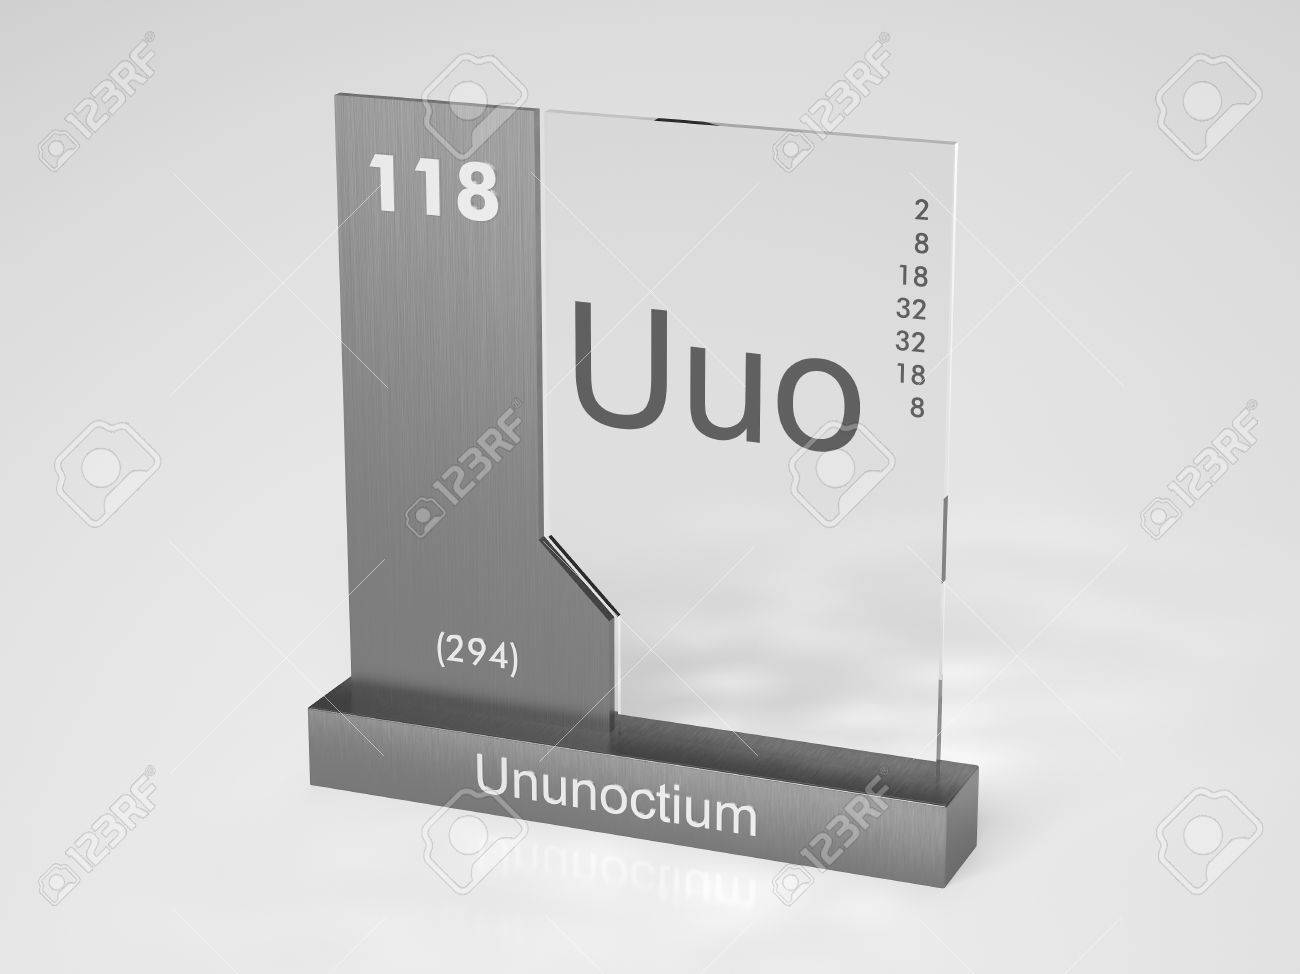 Ununoctium symbol uuo chemical element of the periodic table stock photo ununoctium symbol uuo chemical element of the periodic table urtaz Choice Image